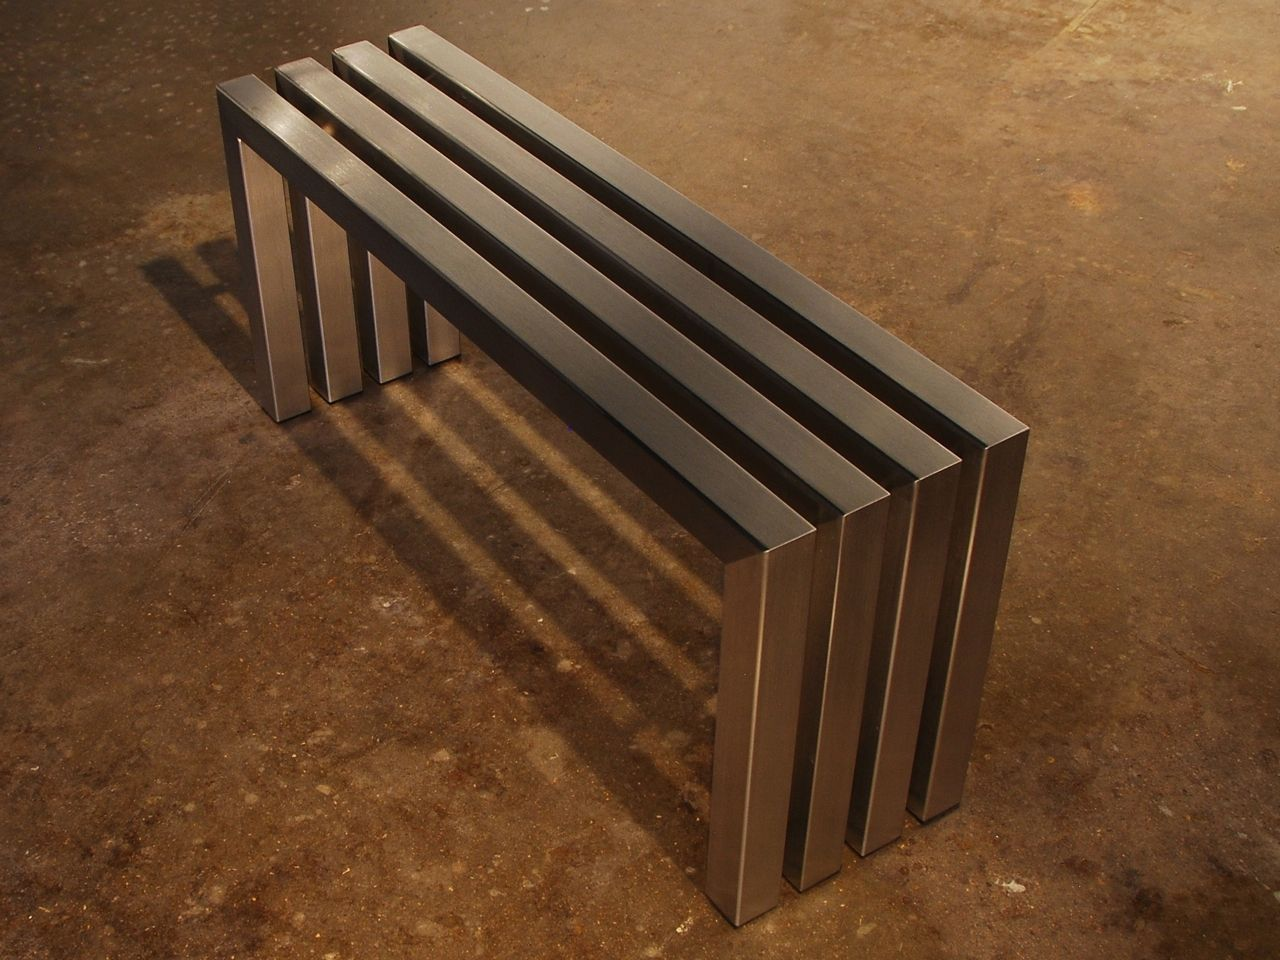 Modern outdoor bench - Custom Made Linear Stainless Steel Bench Modern Indoor Outdoor Bench Fully Welded From Substantial Stainless